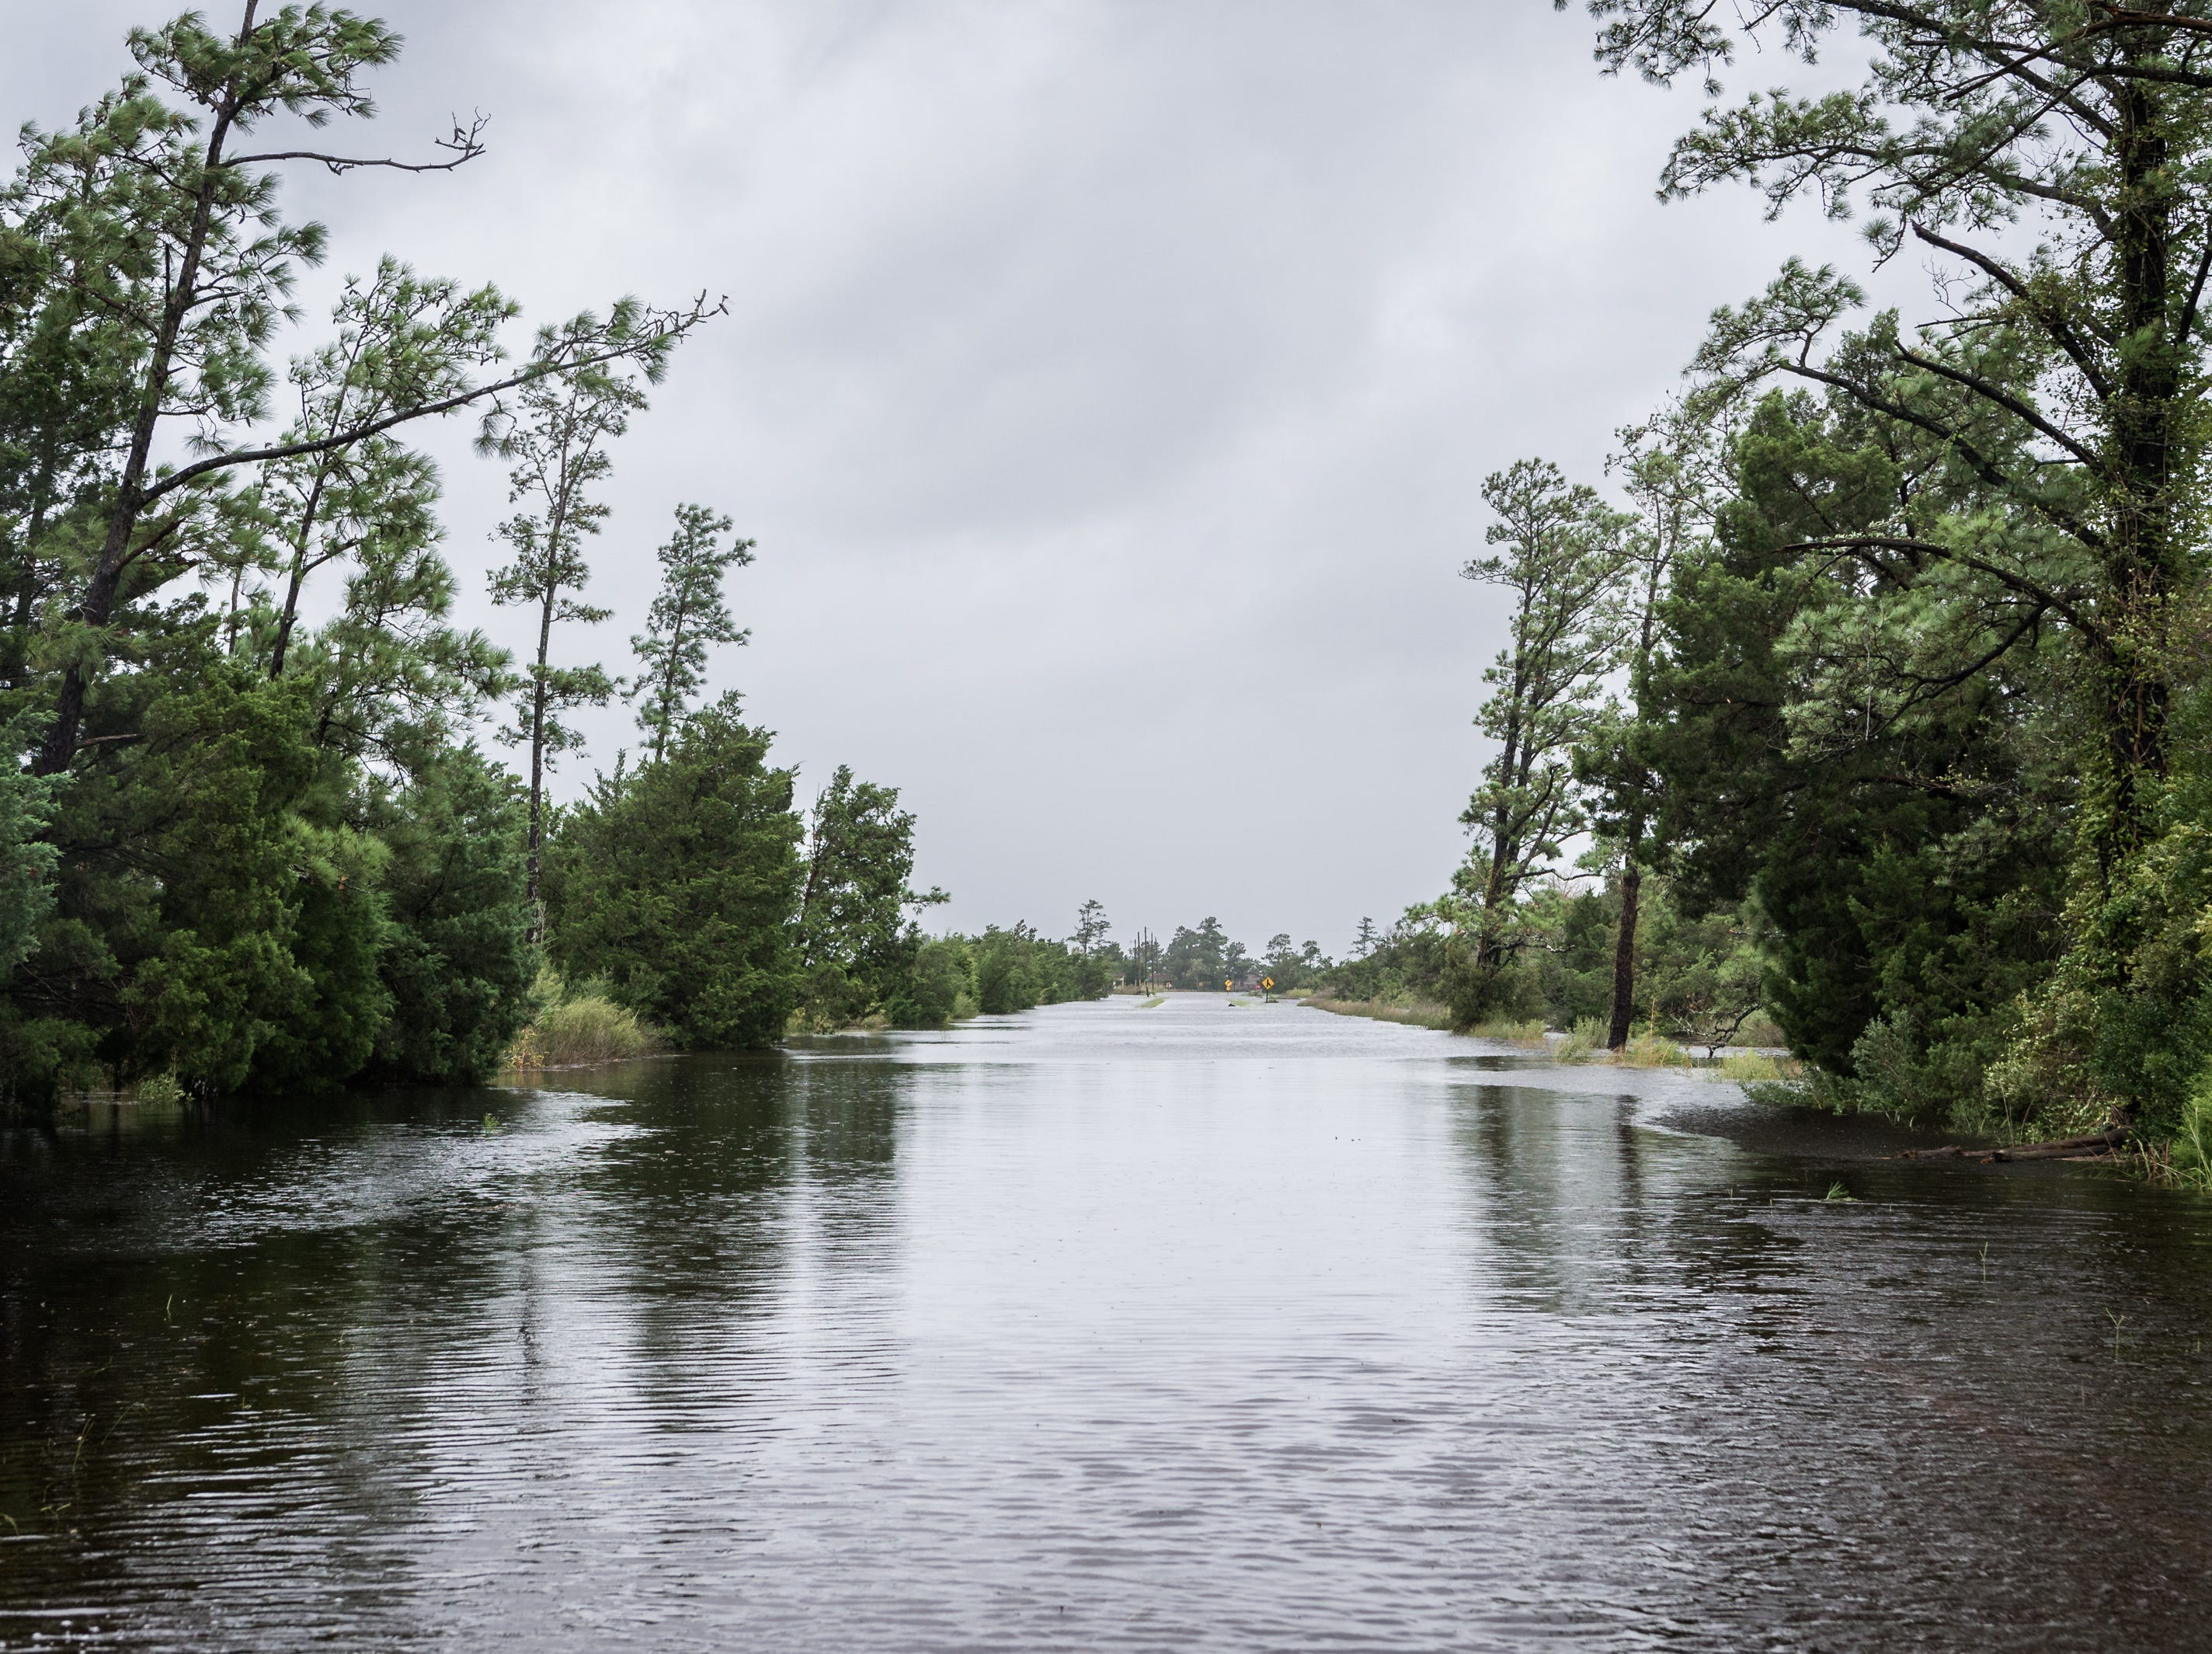 Oyster Creek Street in Swan Quarter N.C sits flooded after Hurricane Florence made landfall in Wilmington, N.C, Sept. 14, 2018.